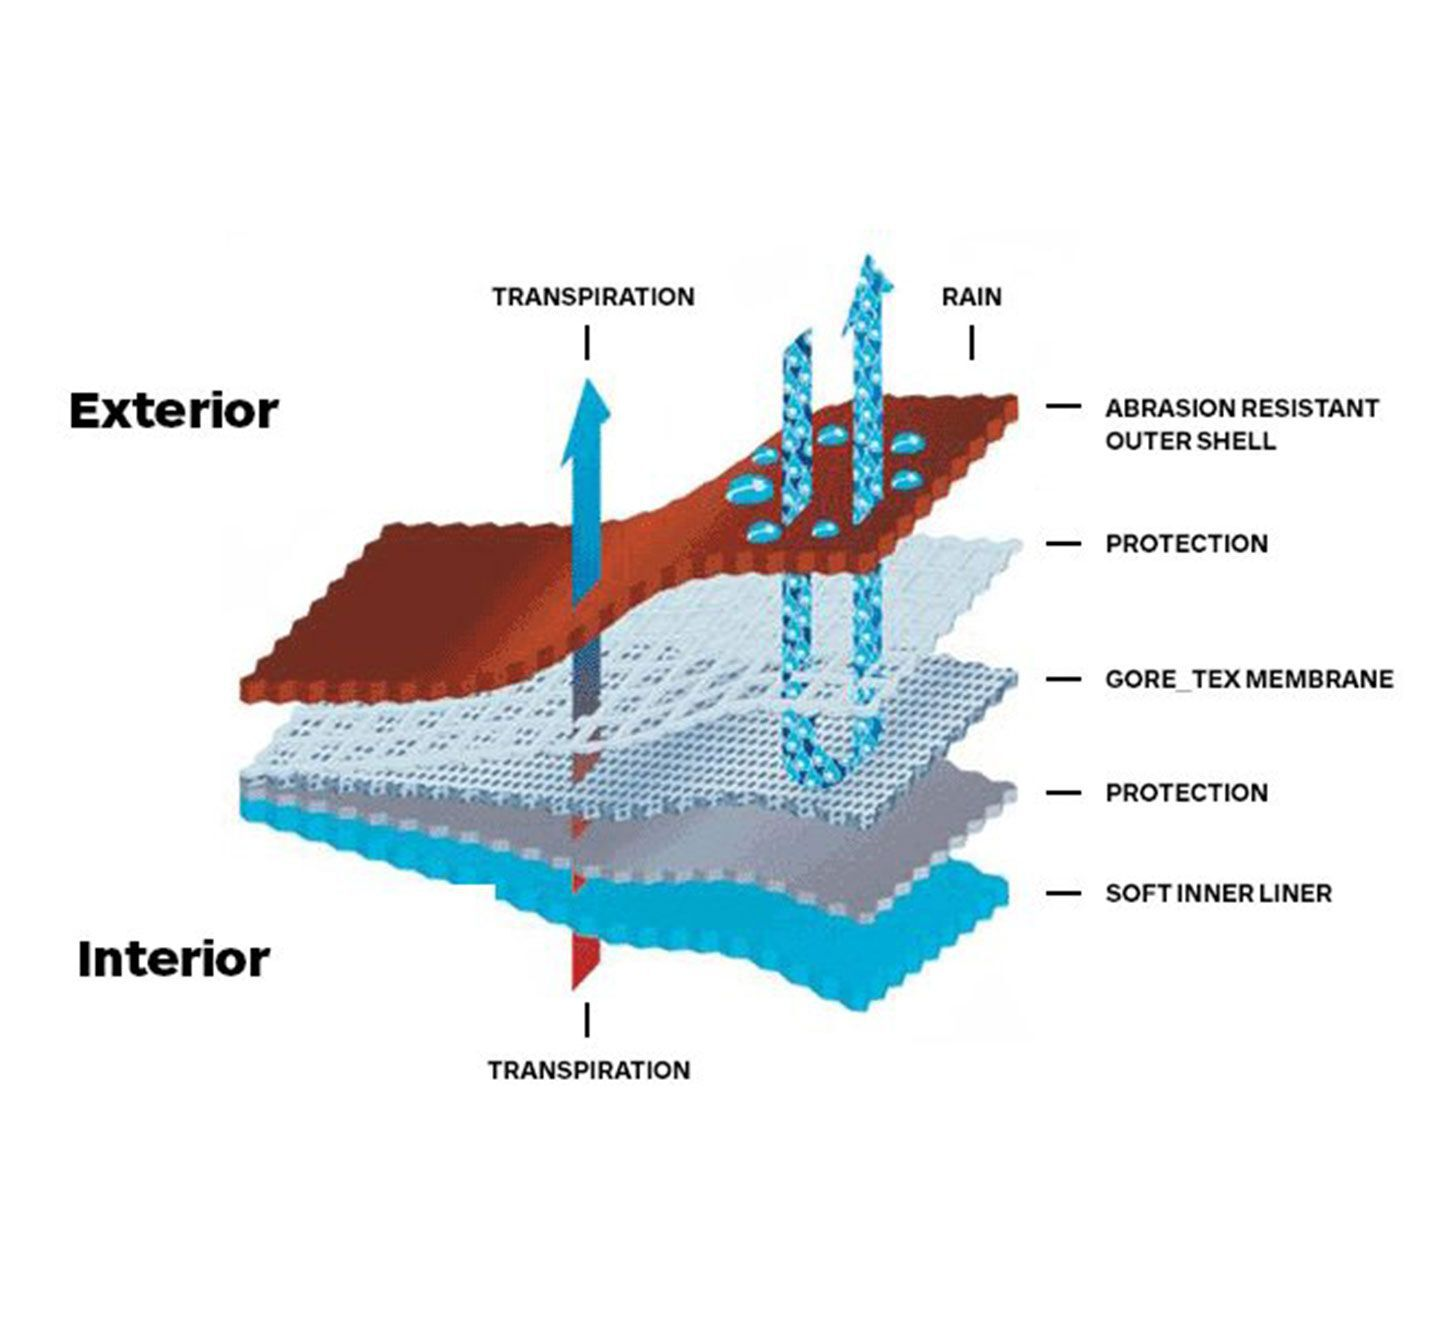 gortex material is a waterproof and breathable membrane